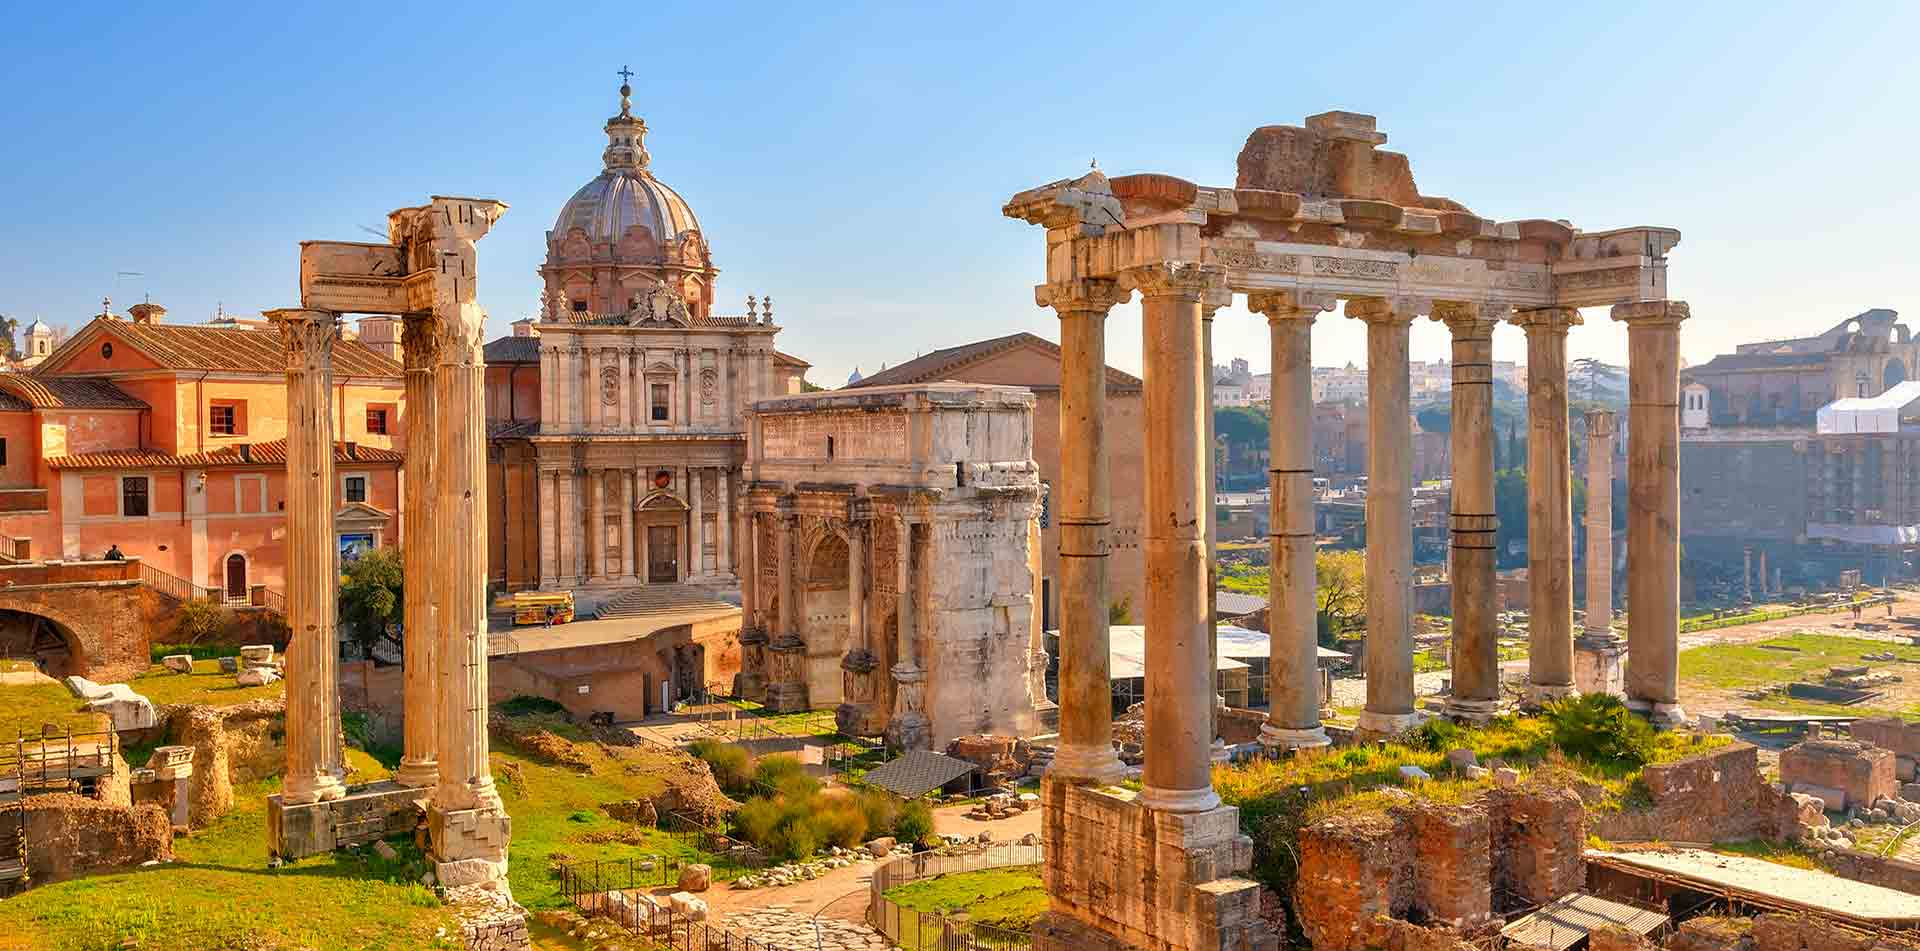 Europe Italy Rome Forum Romanum ancient ruins of Roman Forum at daytime - luxury vacation destinations